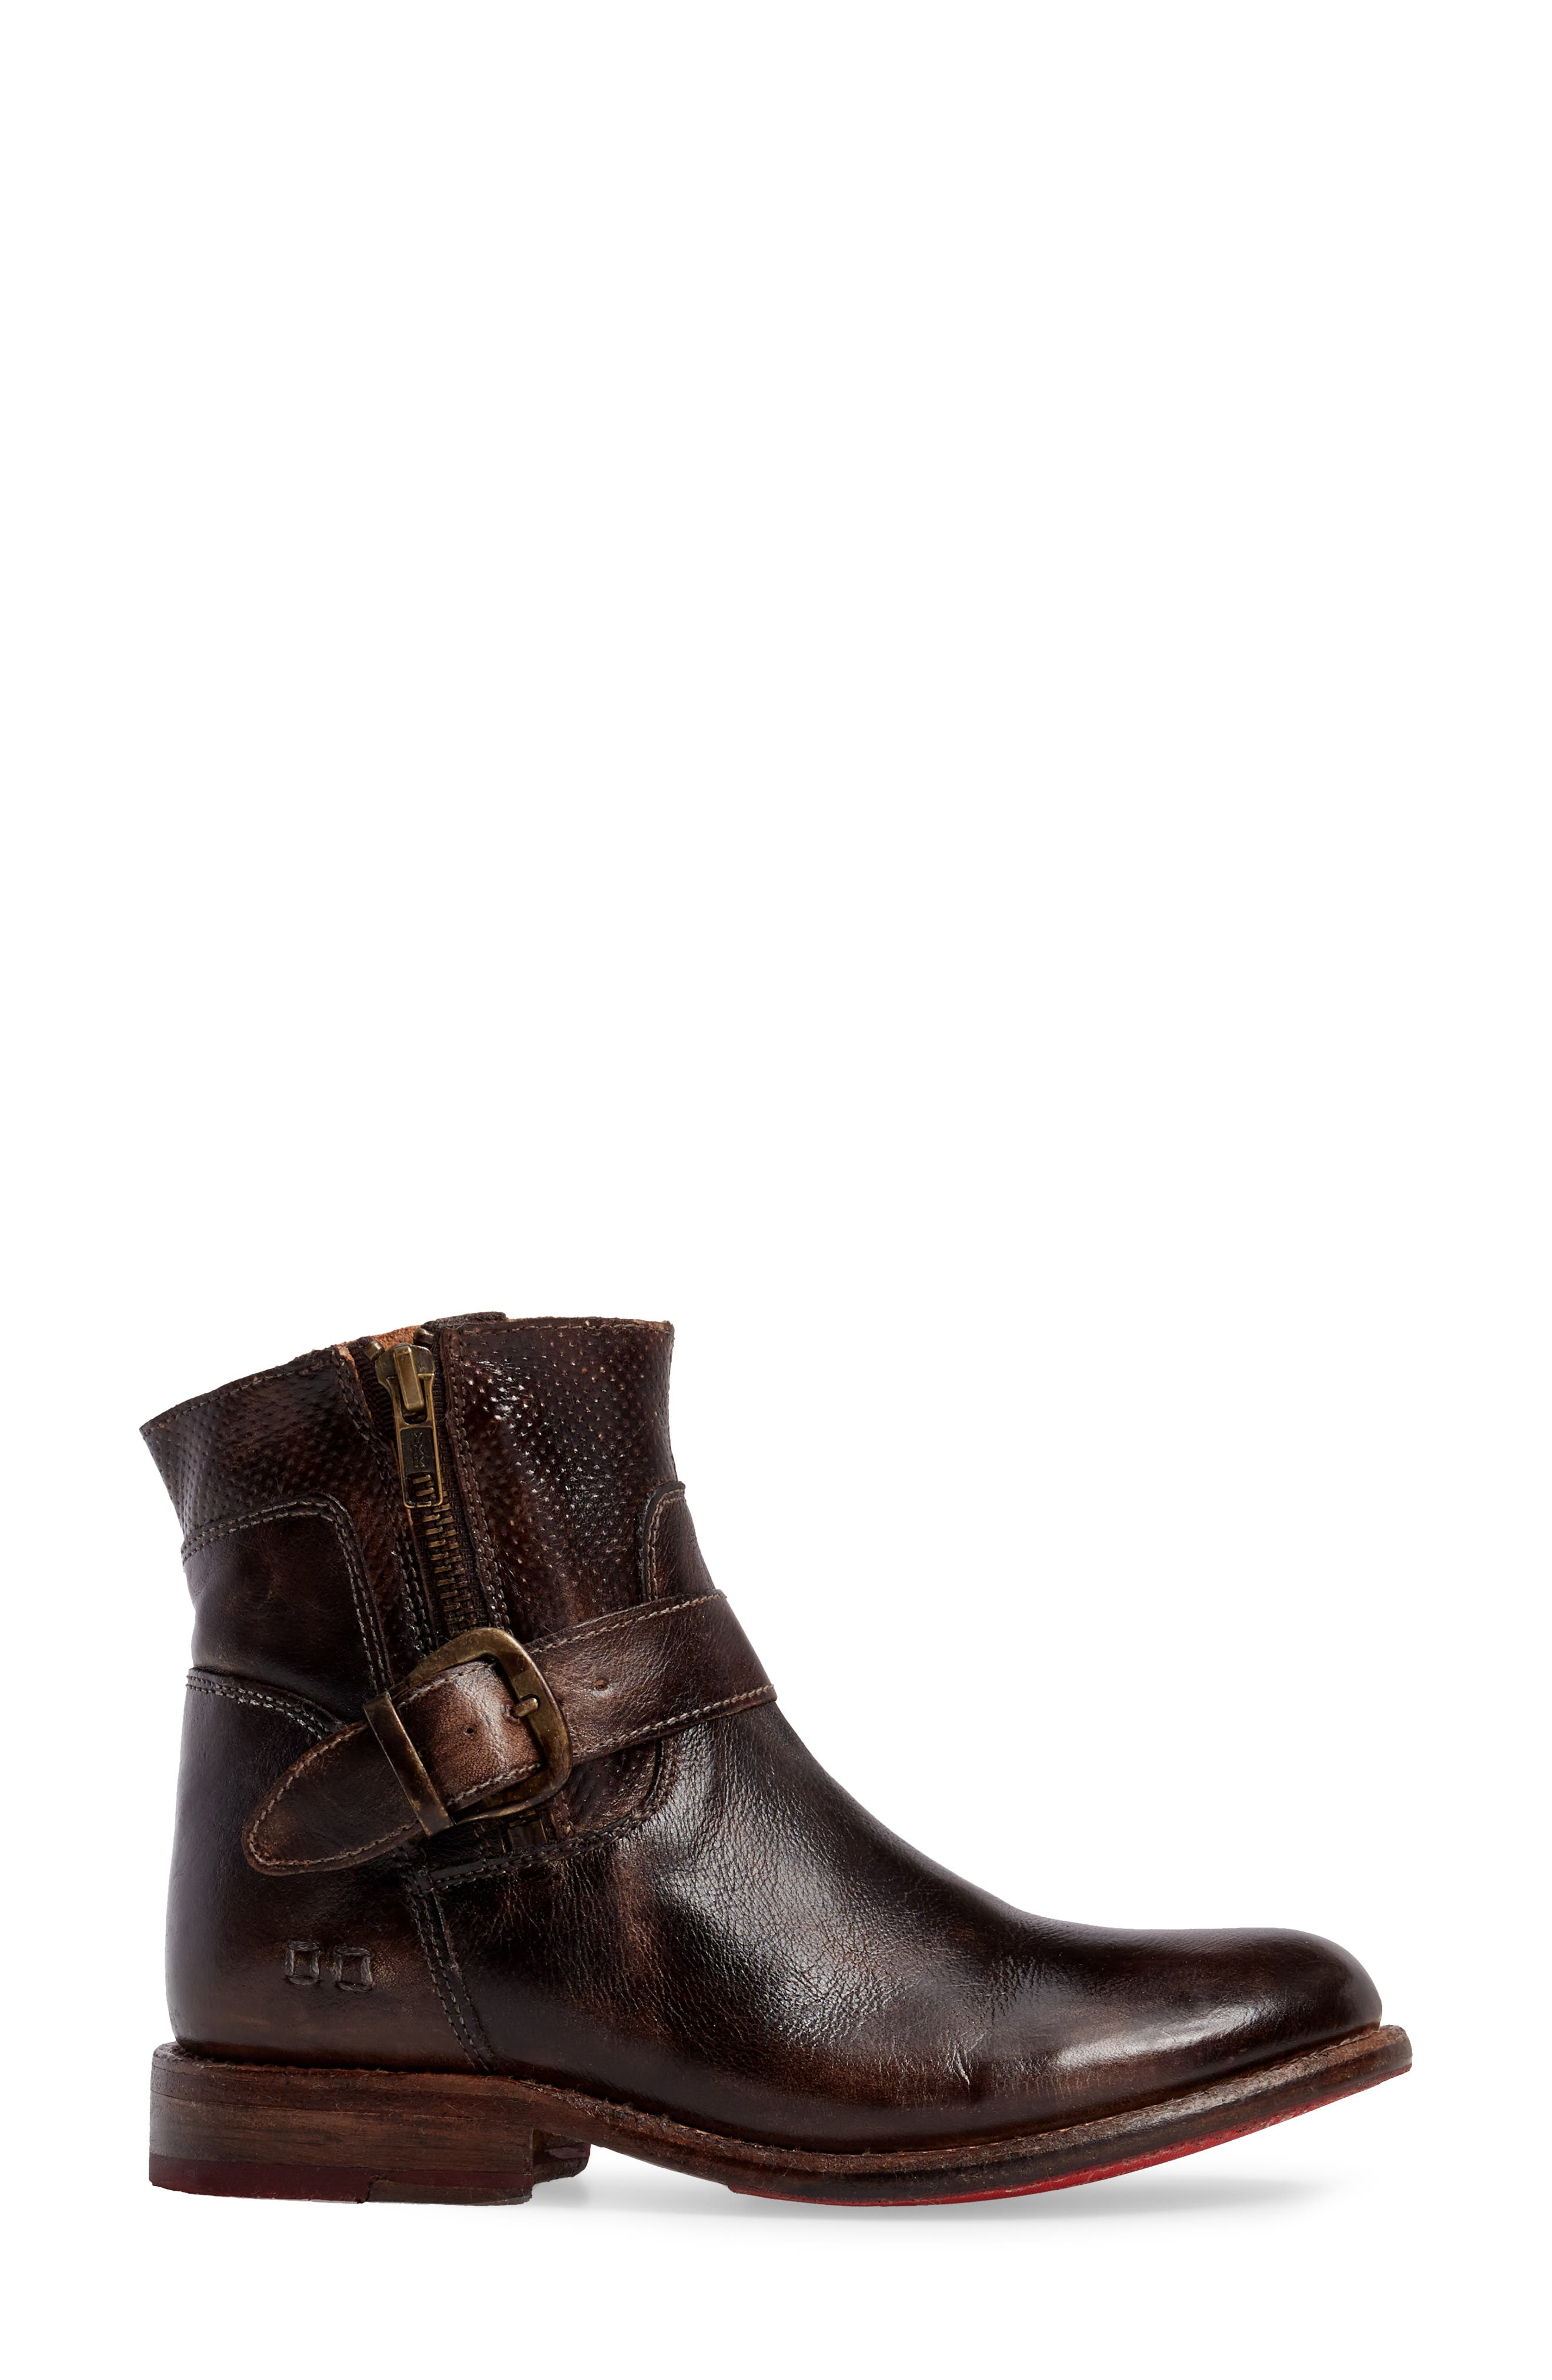 Becca Buckle Boot,                             Alternate thumbnail 8, color,